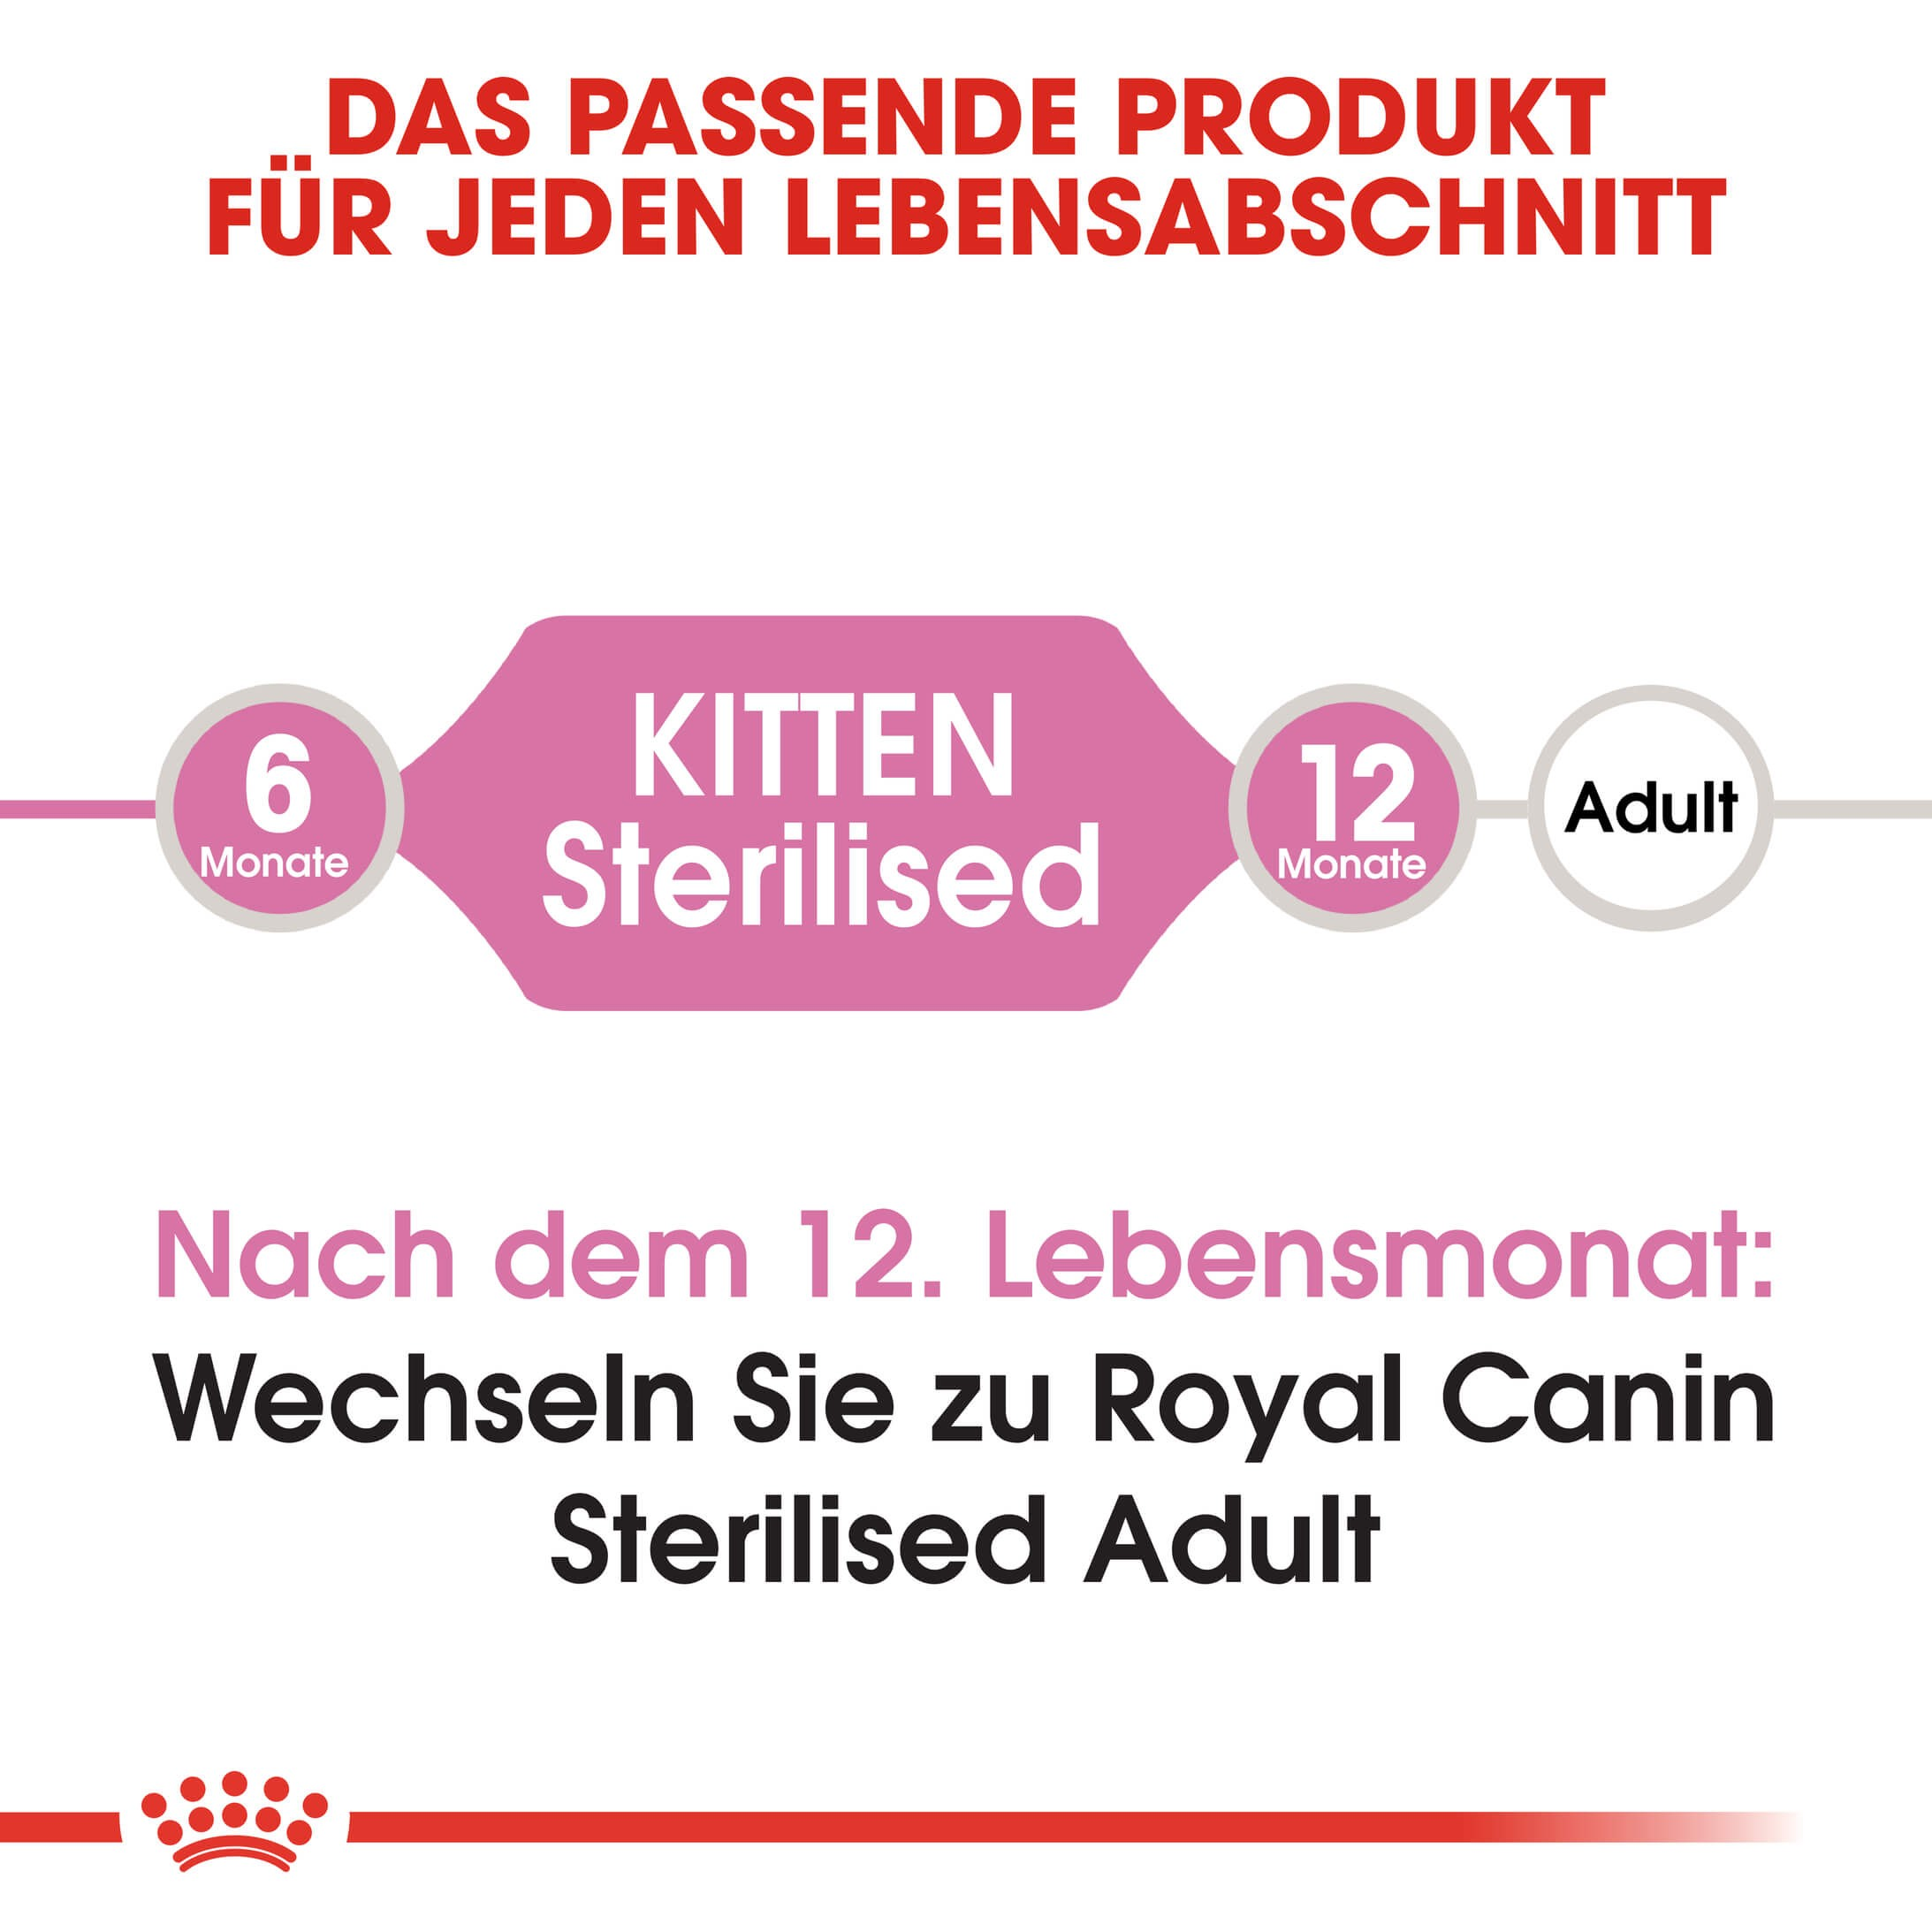 Royal Canin Kitten Sterilised Katzenfutter